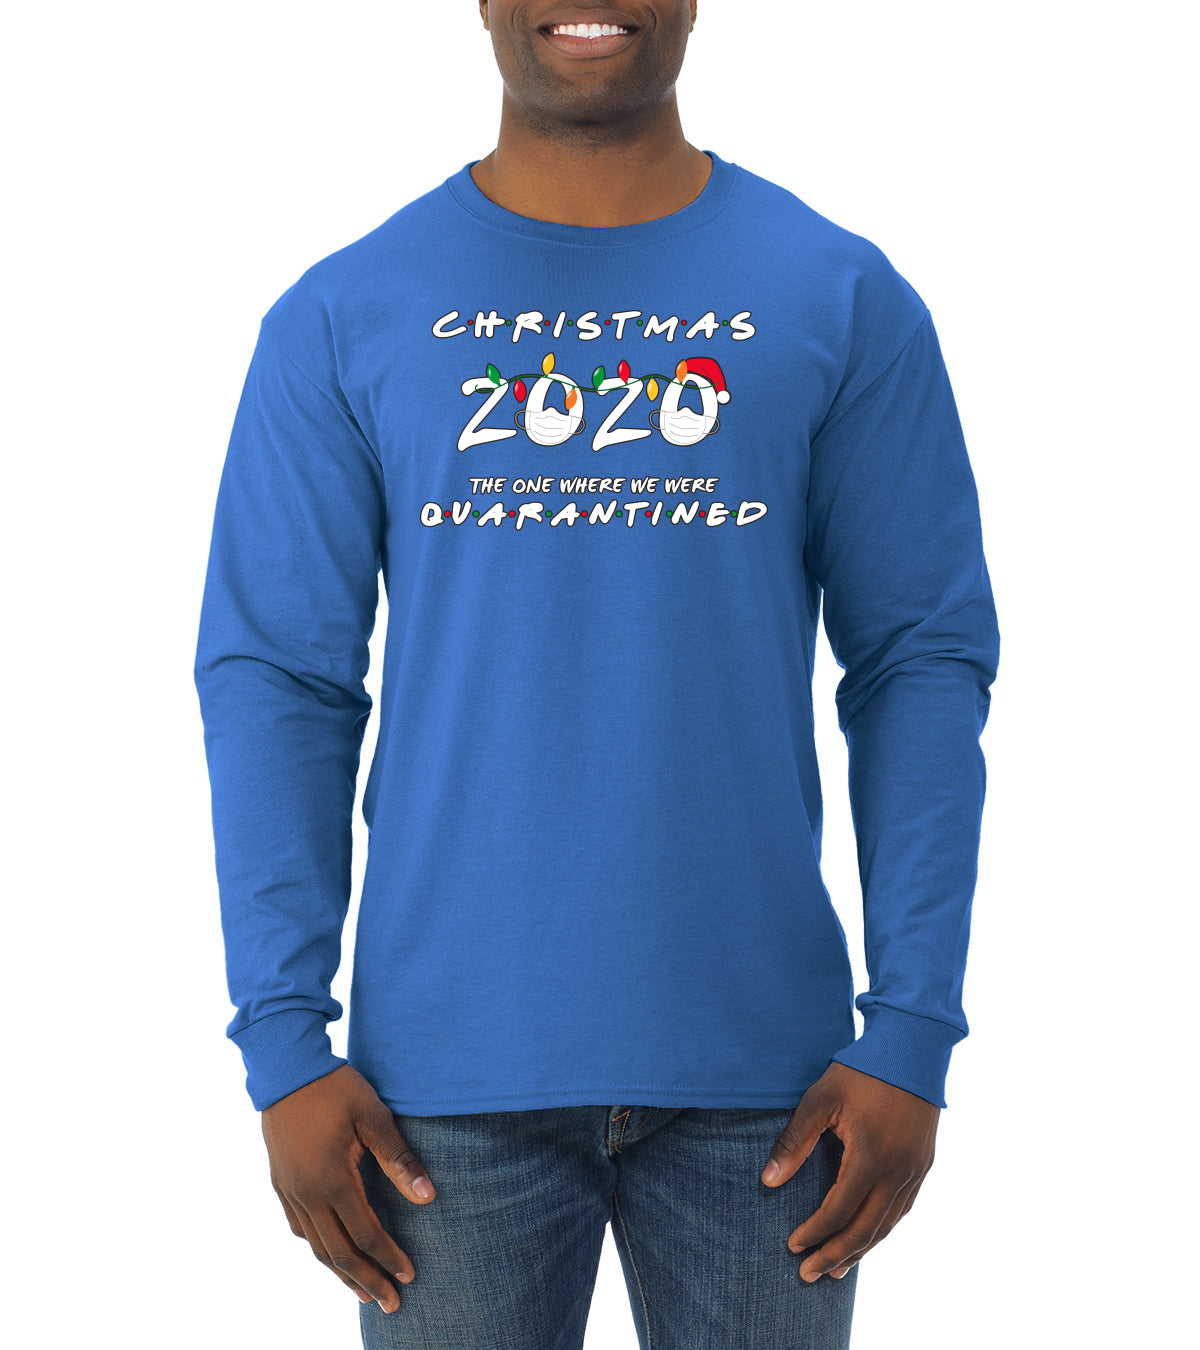 Christmas 2020 The One Where we were Quarantined Christmas Mens Long Sleeve Shirt